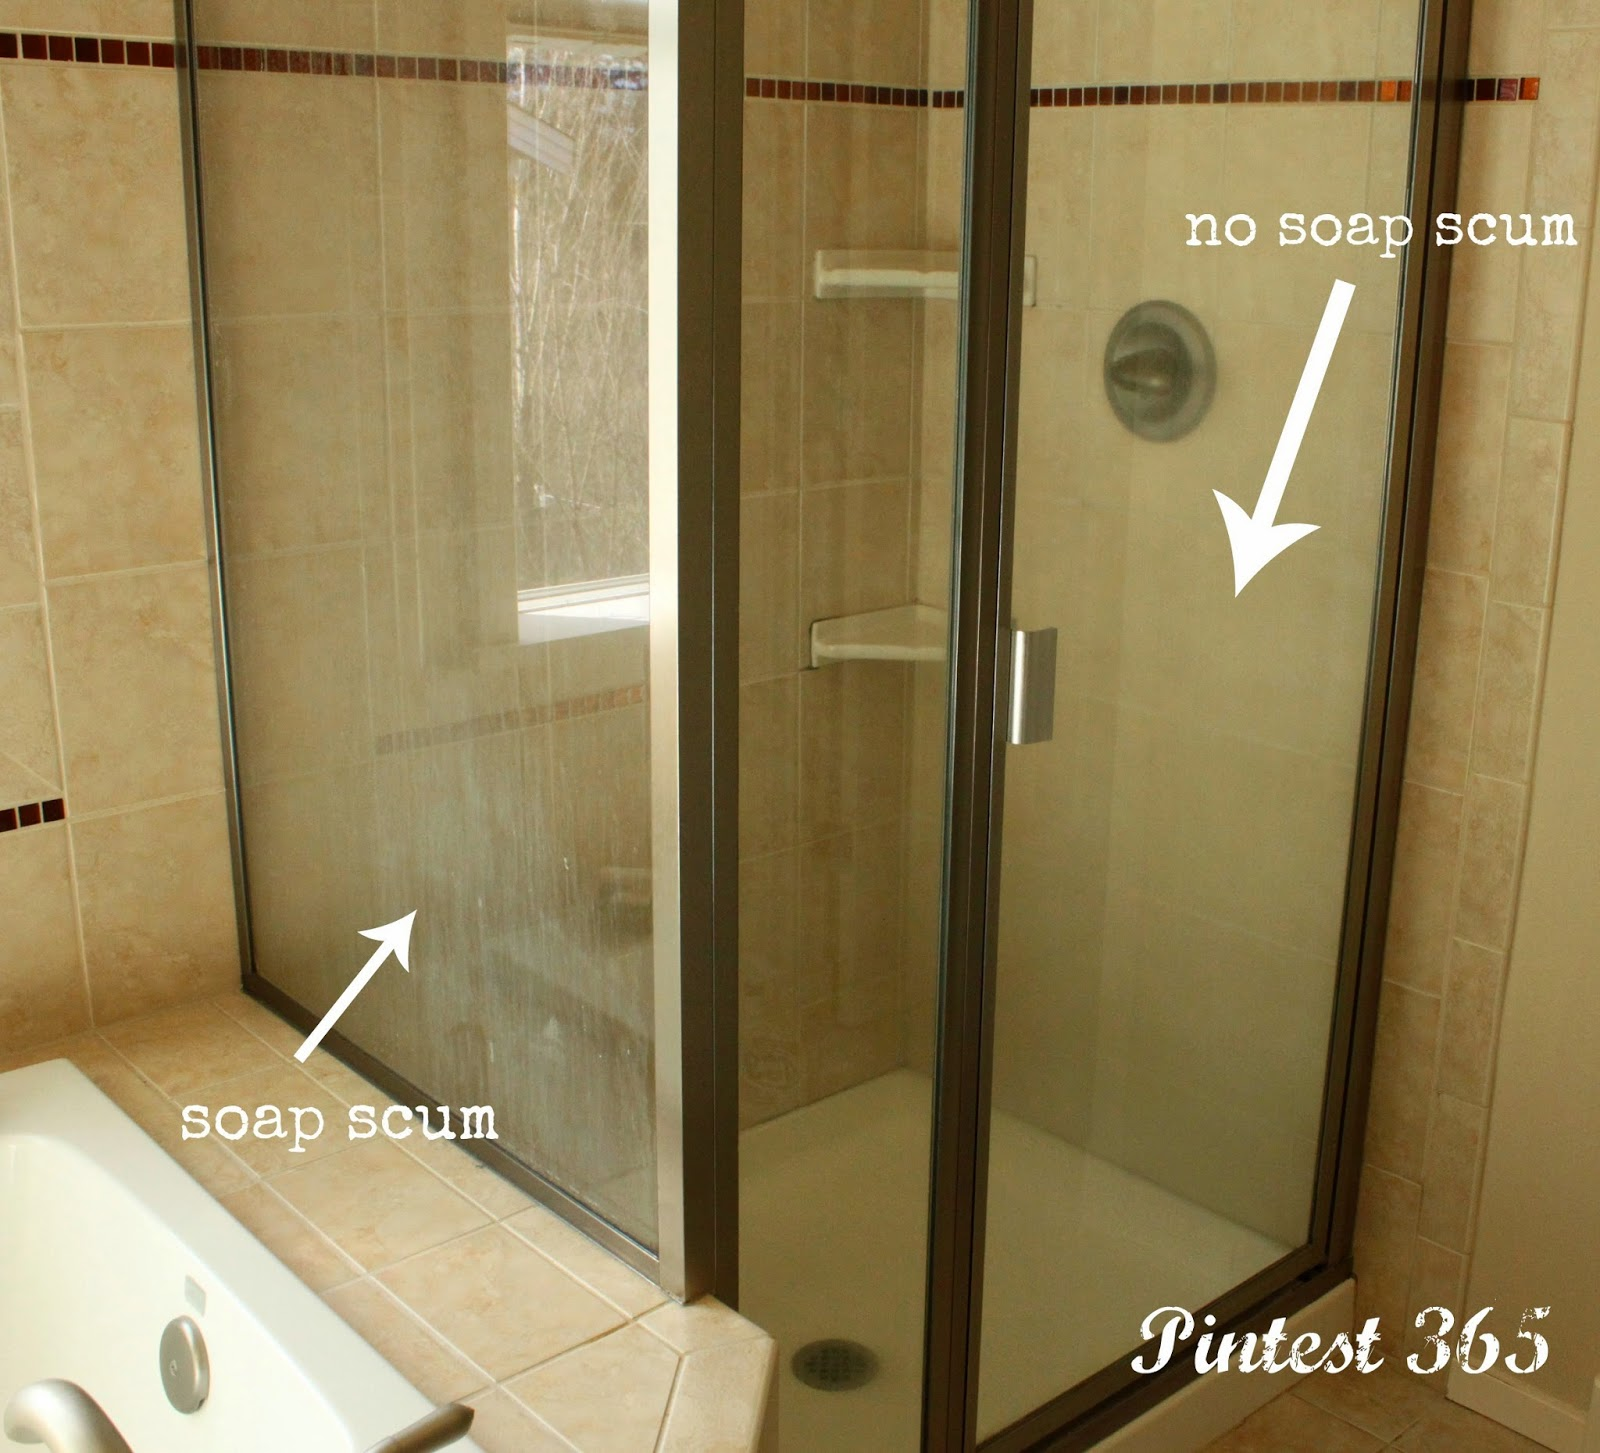 Day 73 Cleaning Soap S Off Shower Doors Success